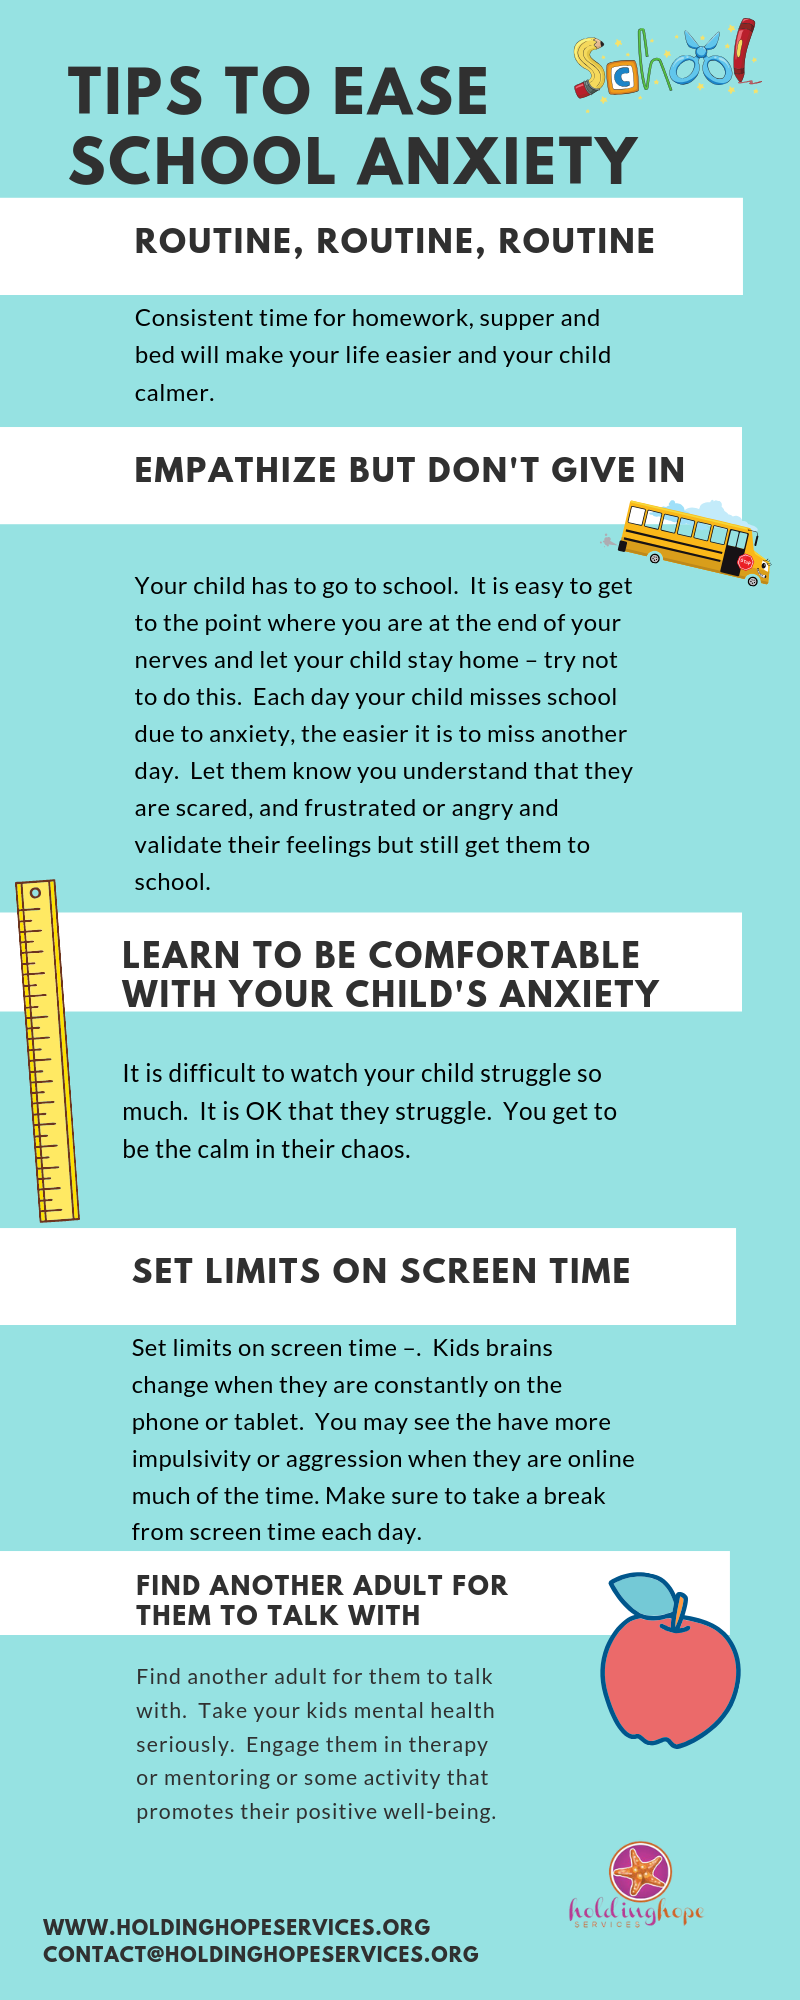 School anxiety infographic.png